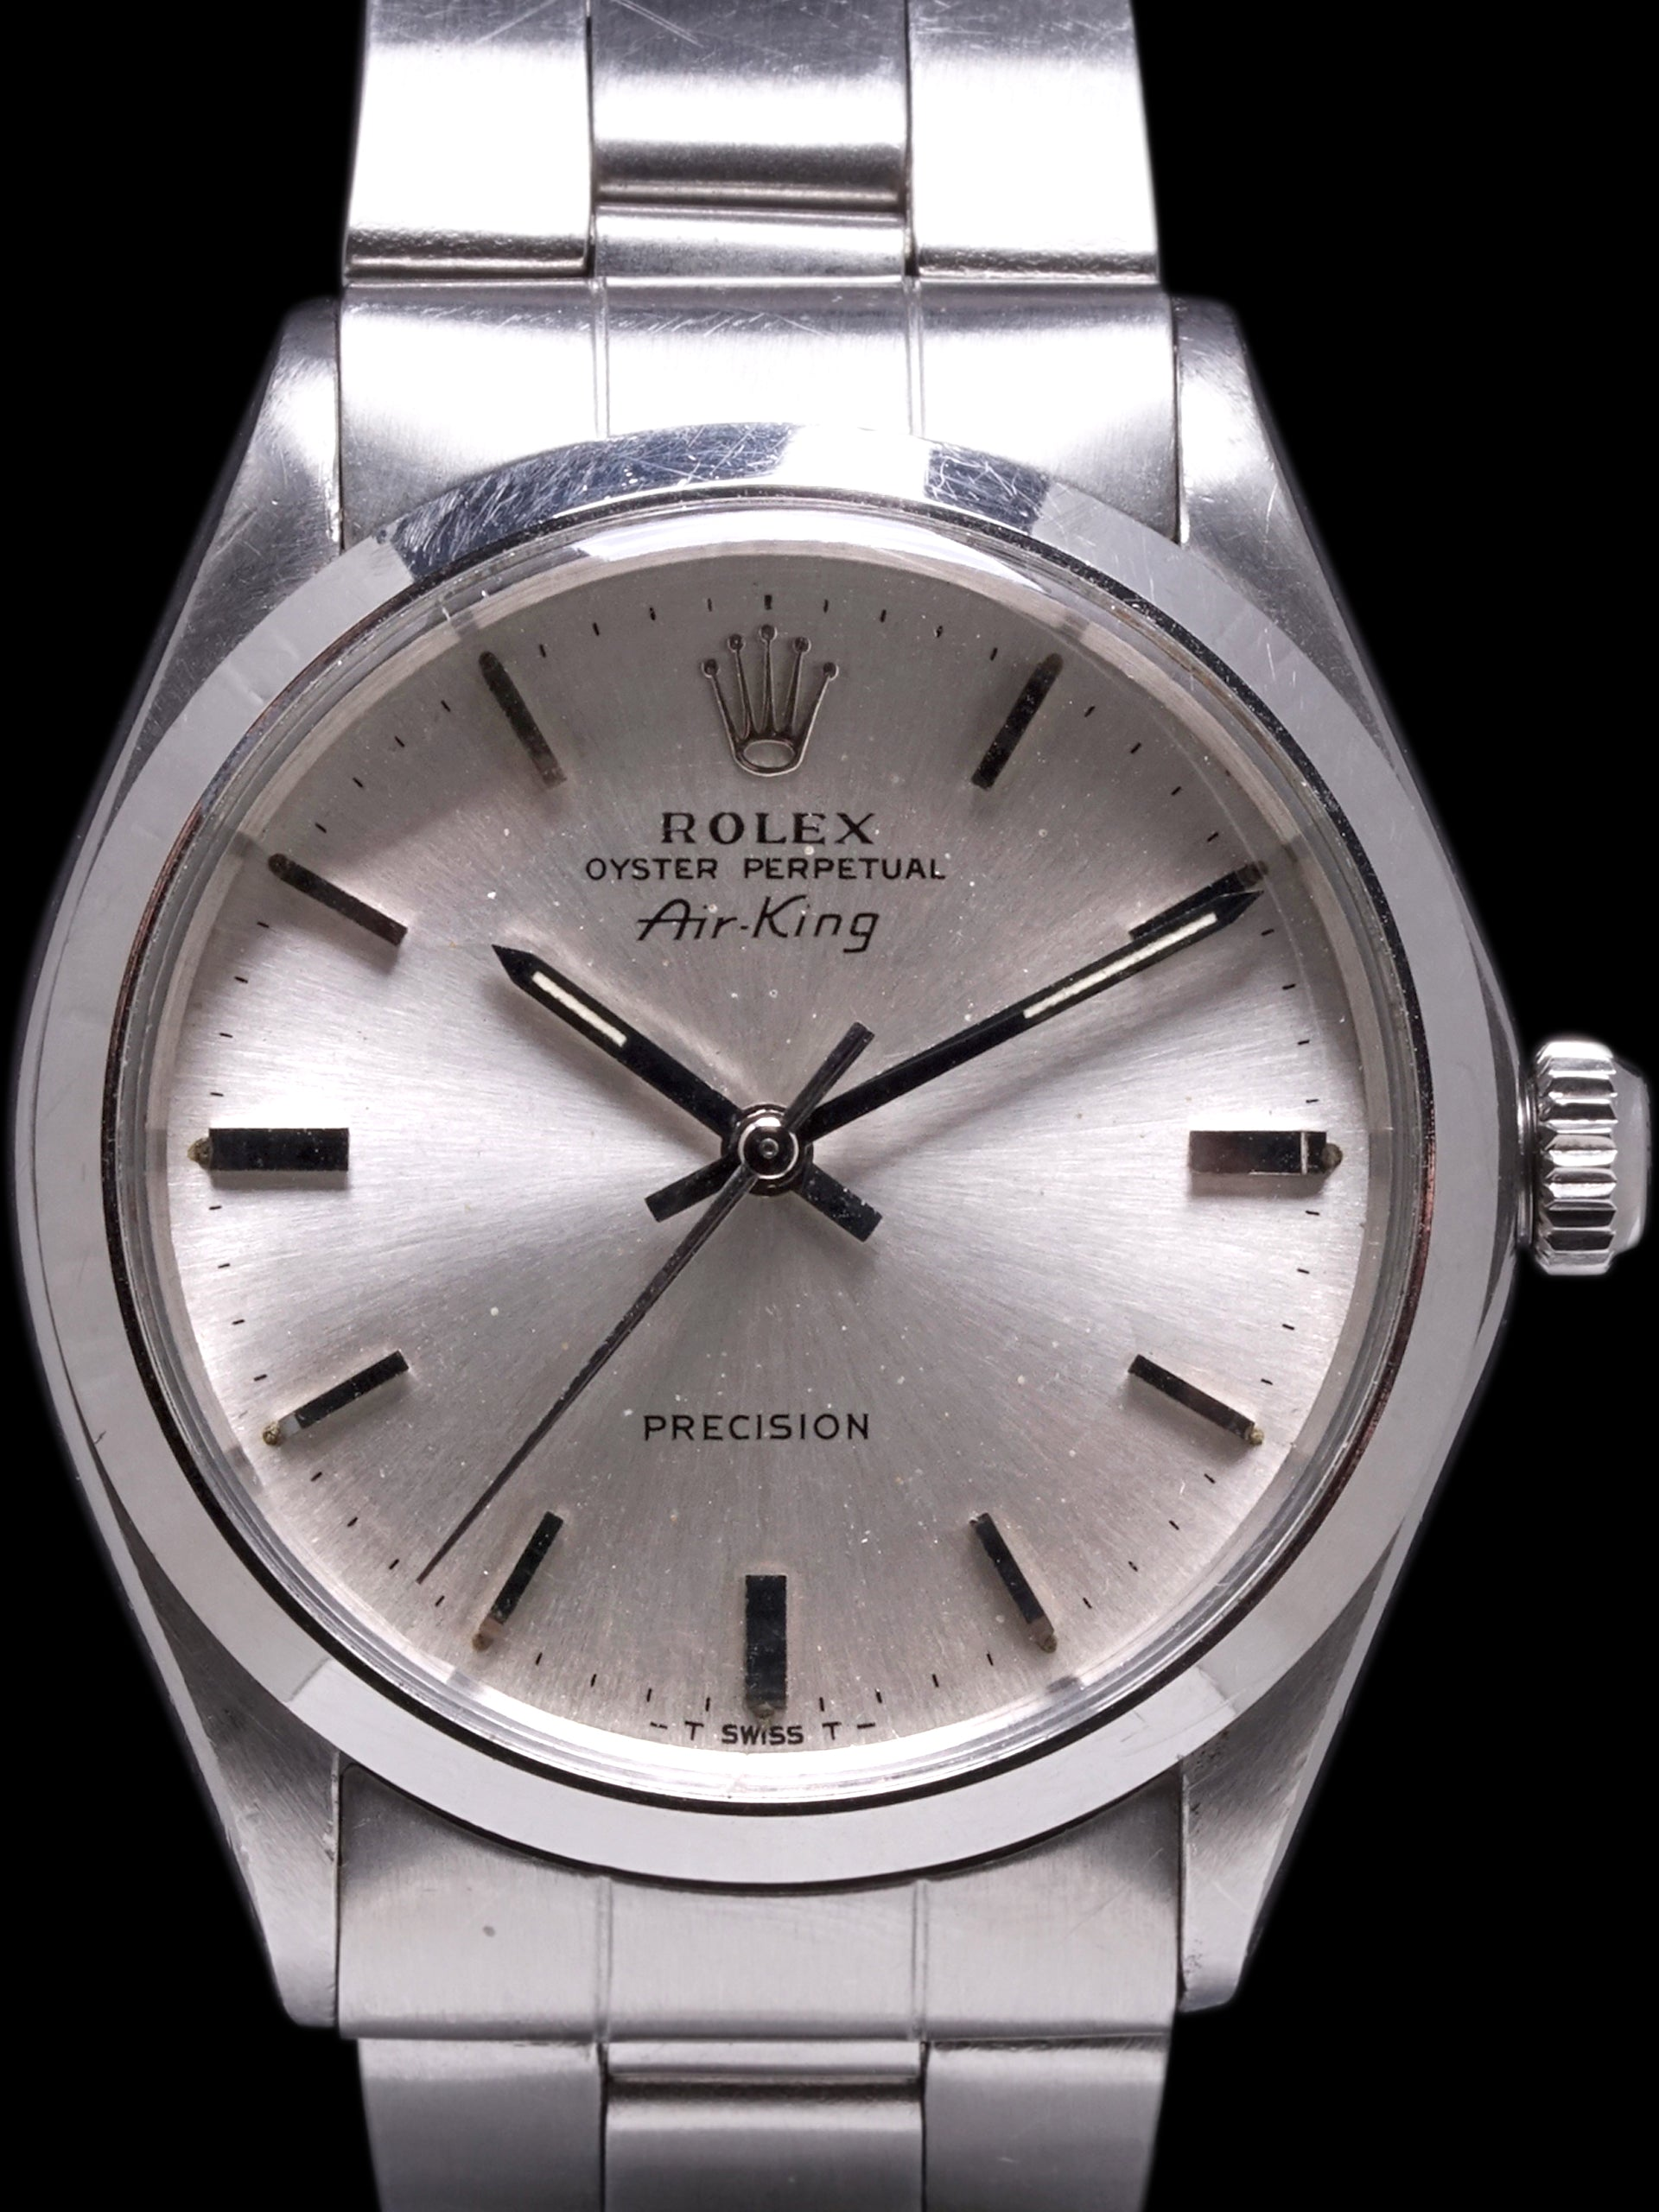 *Unpolished* 1973 Rolex Air-King (Ref. 5500)